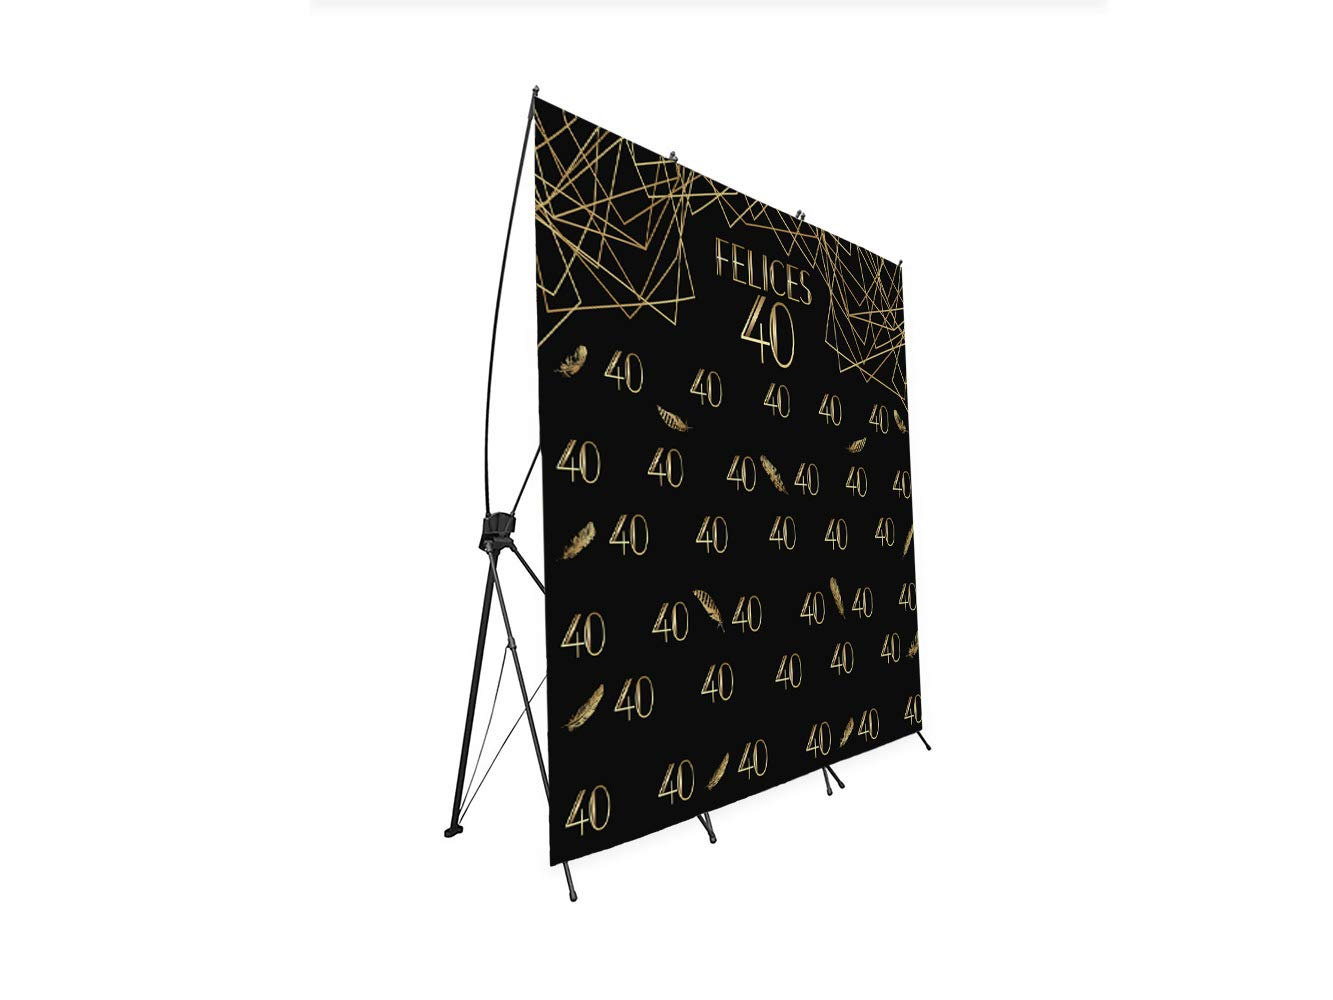 Photocall X-Banner Extensible 100% Felices 40 | 250x200cm ...